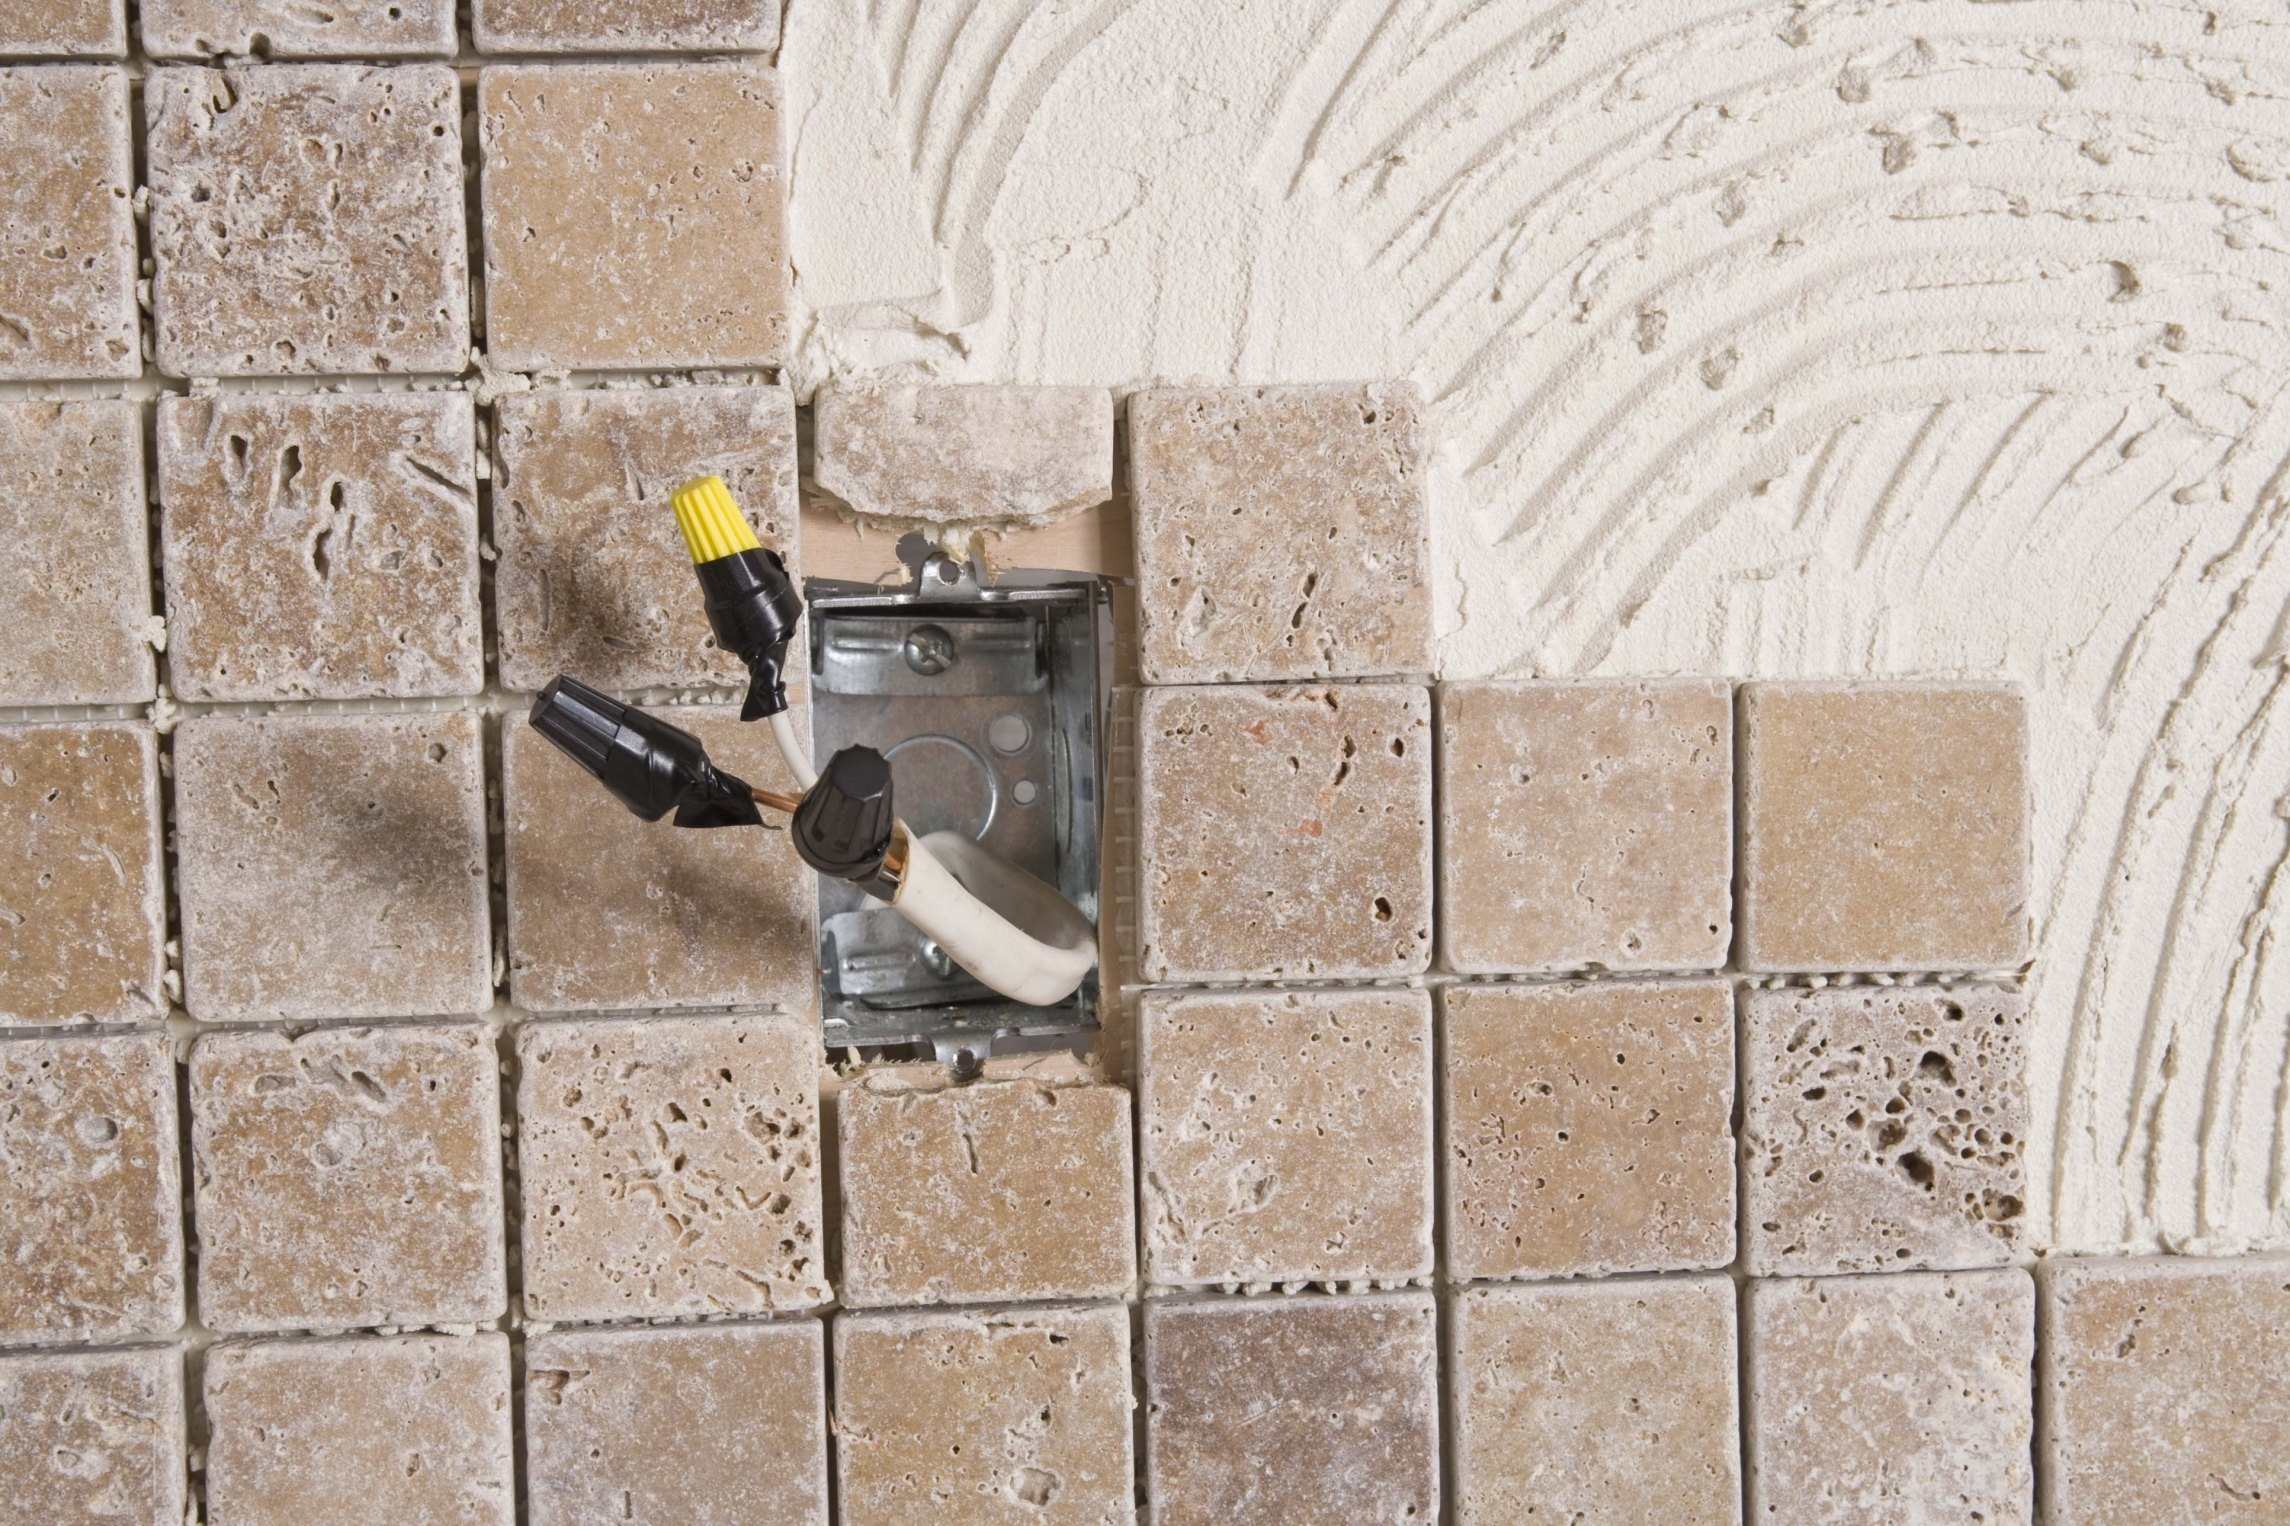 How To Grout A Backsplash Around Outlets Ehow